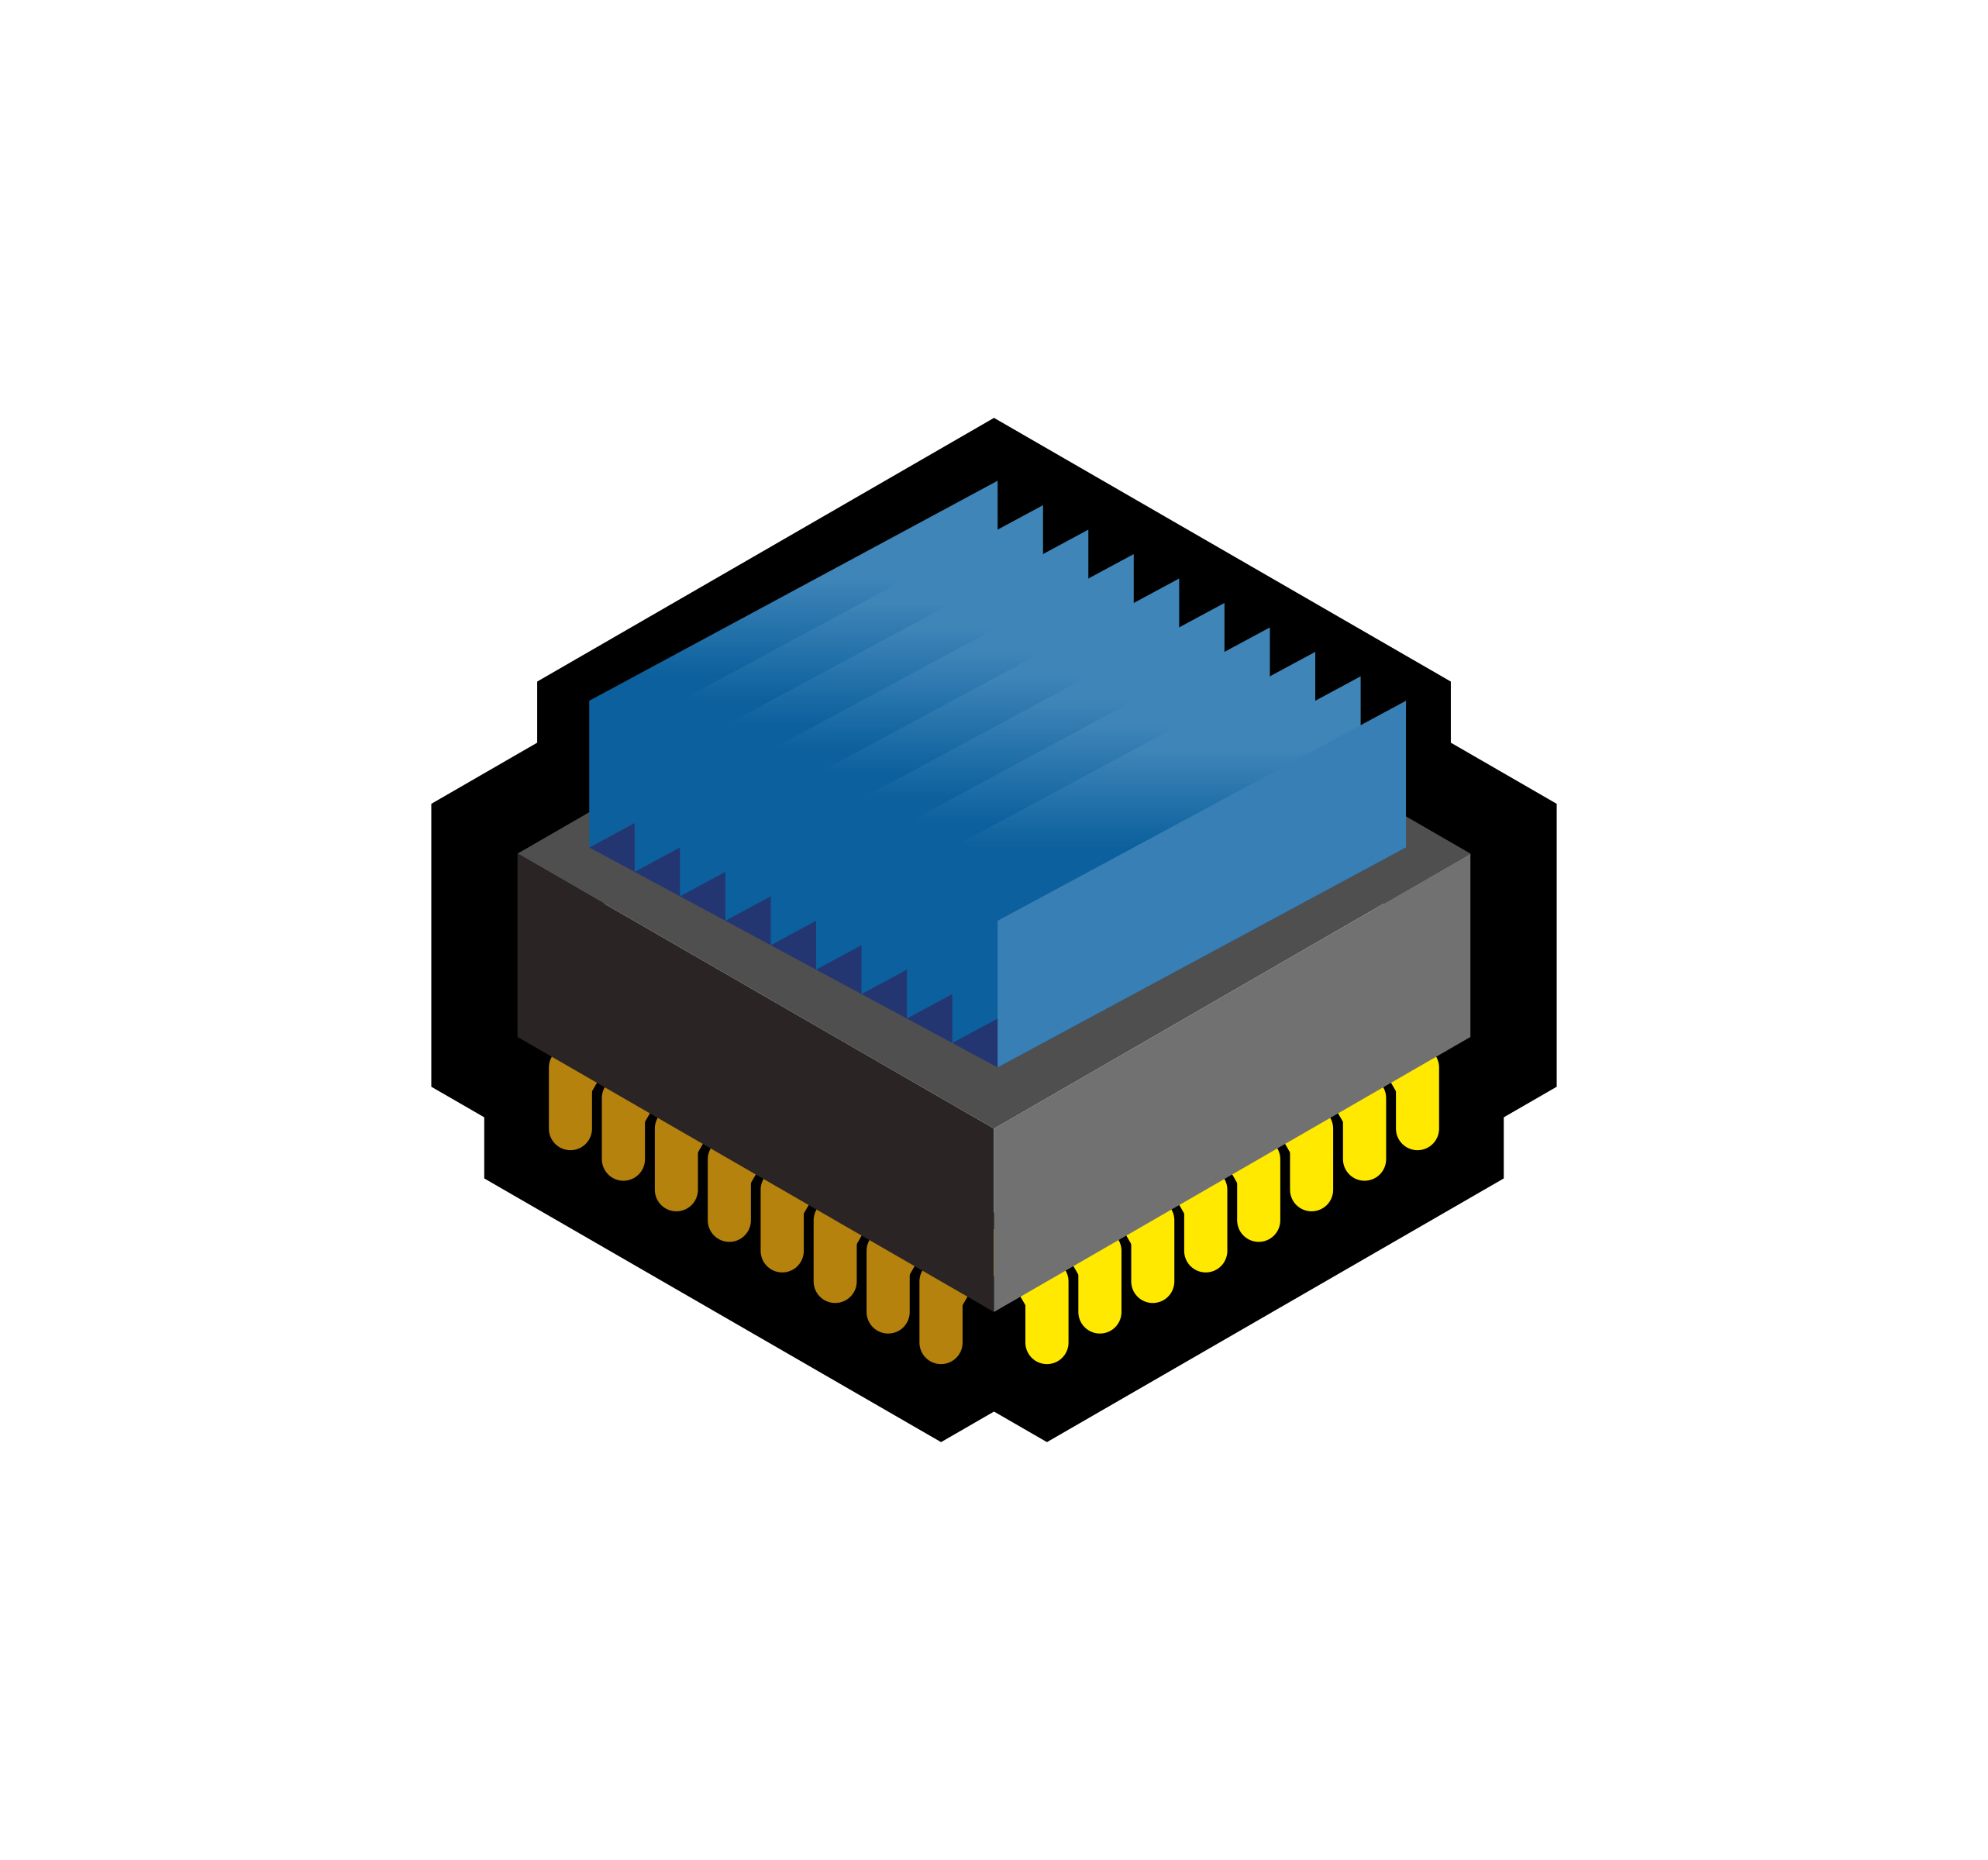 Cpu big image png. Electronics clipart electronic component